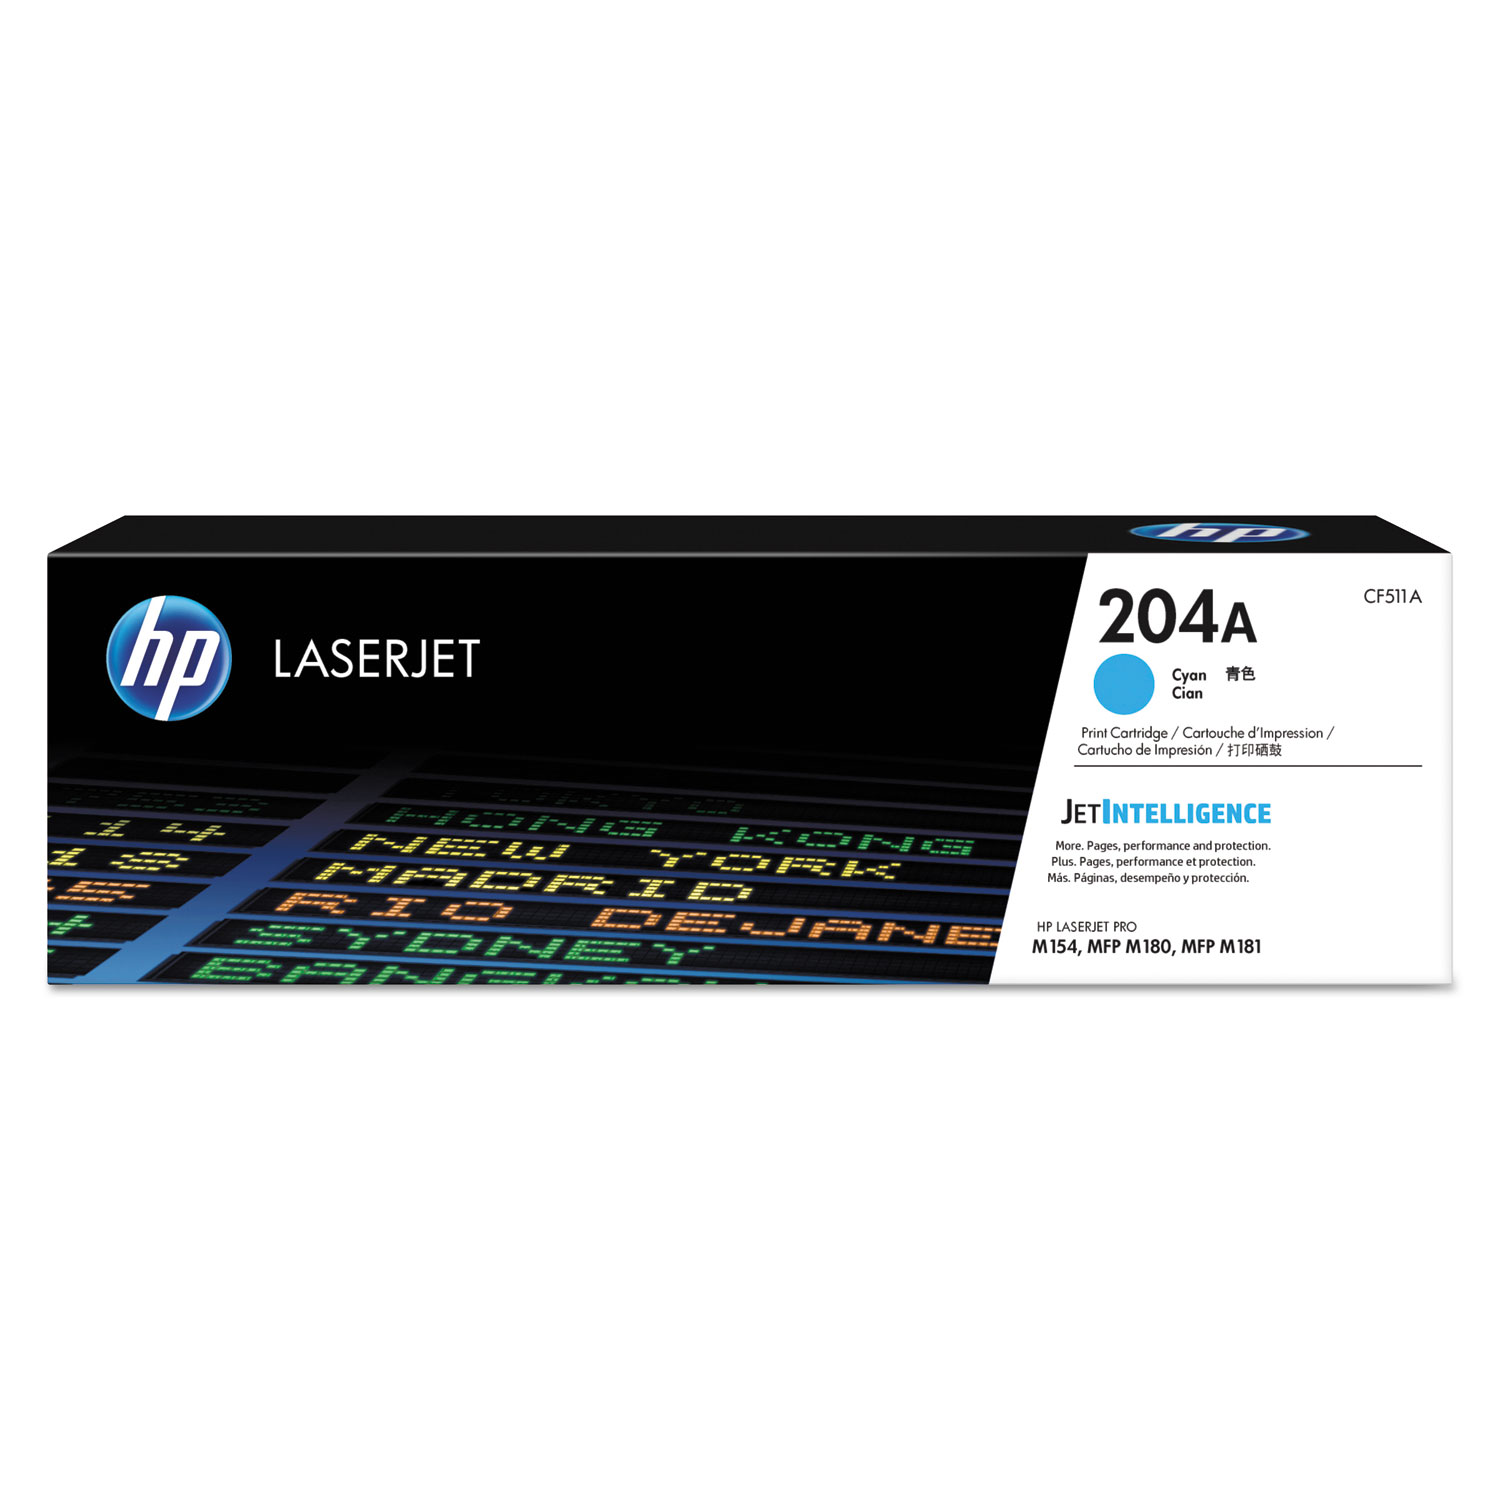 HP 204A, CF511A Cyan Original LaserJet Toner Cartridge